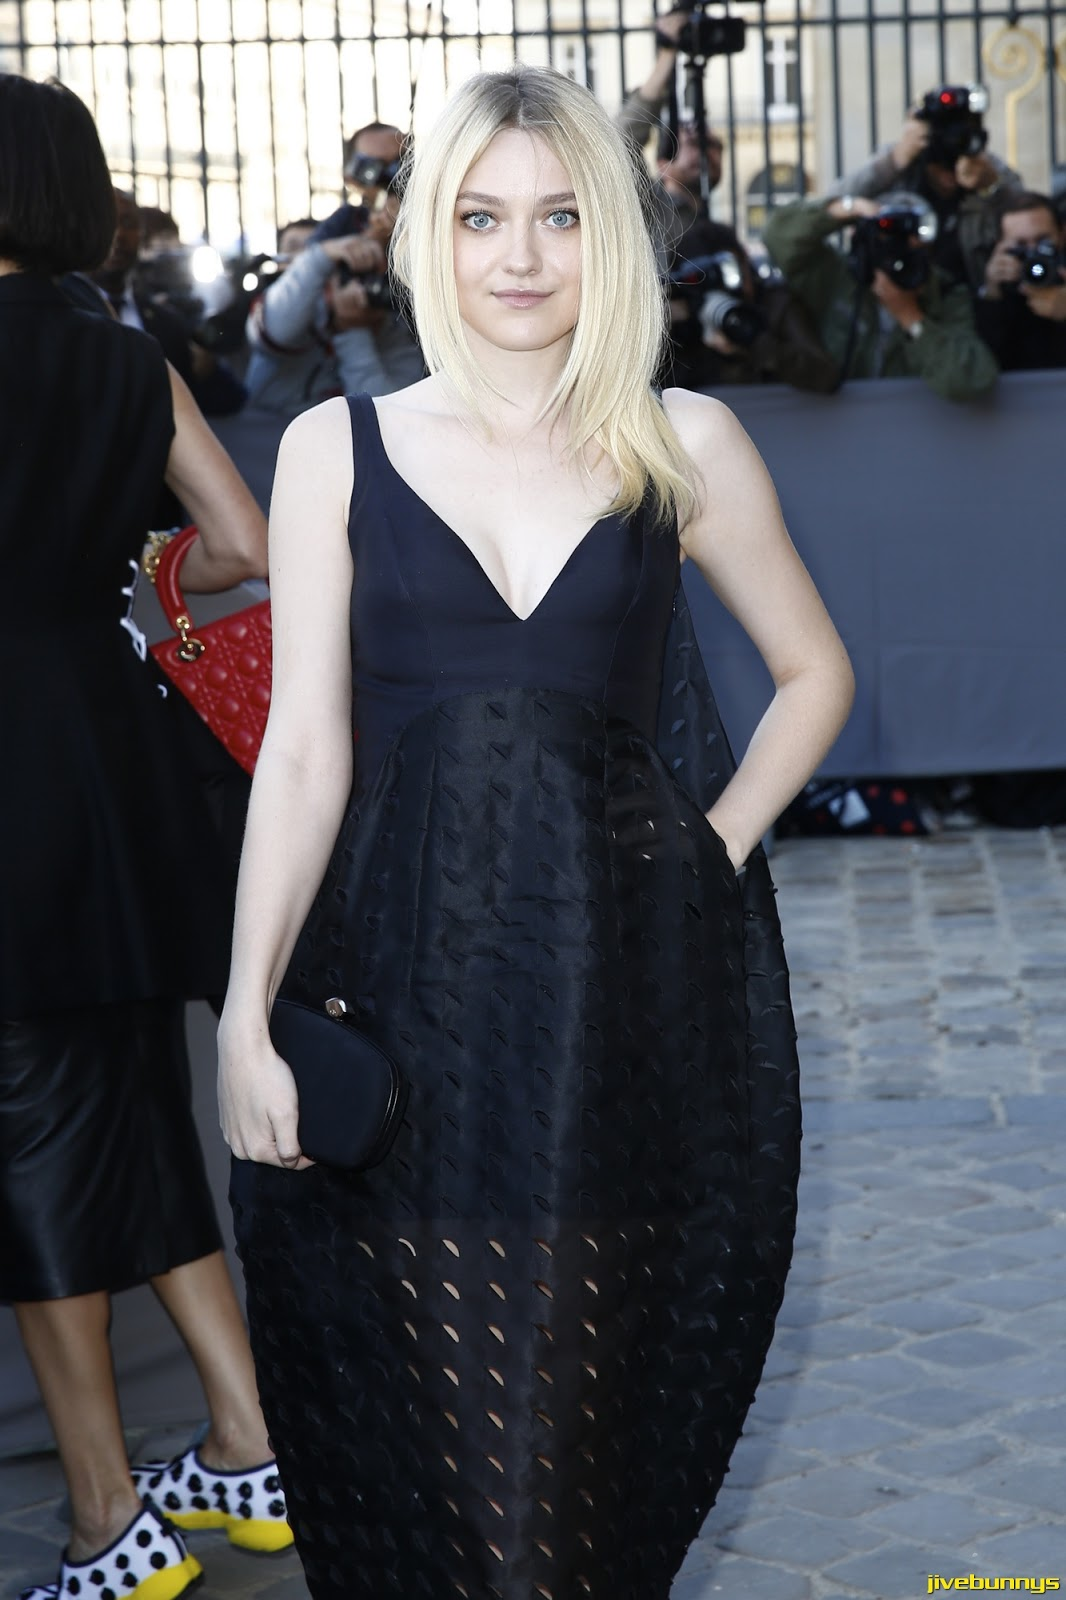 Dakota Fanning - At the Christian Dior show at Paris Fashion Week in Paris - 9/26/14